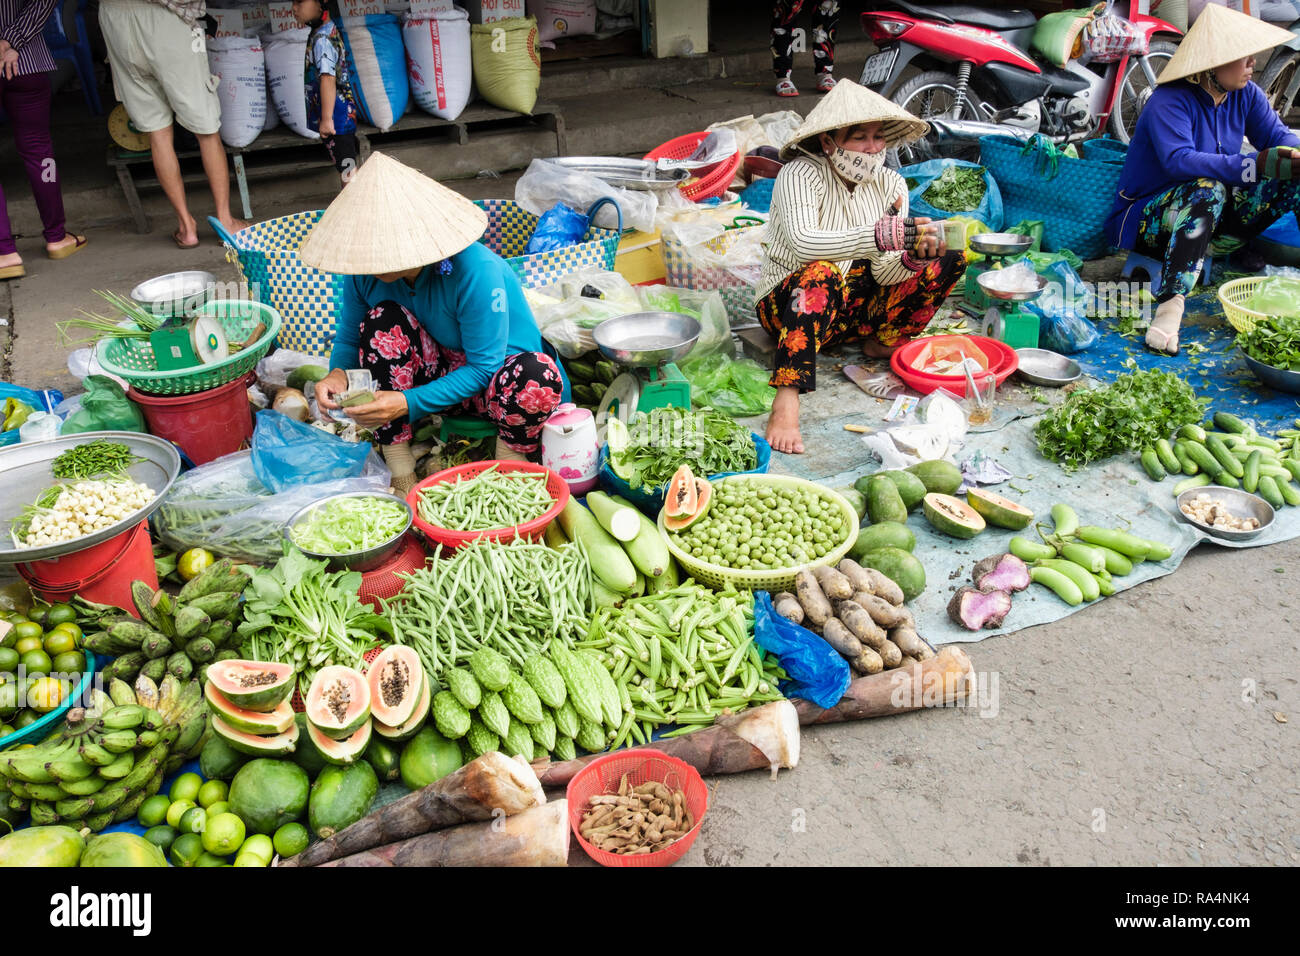 1d35101fcfa Vietnamese women stallholders wearing conical hats displaying fresh local  fruit and vegetables for sale in a